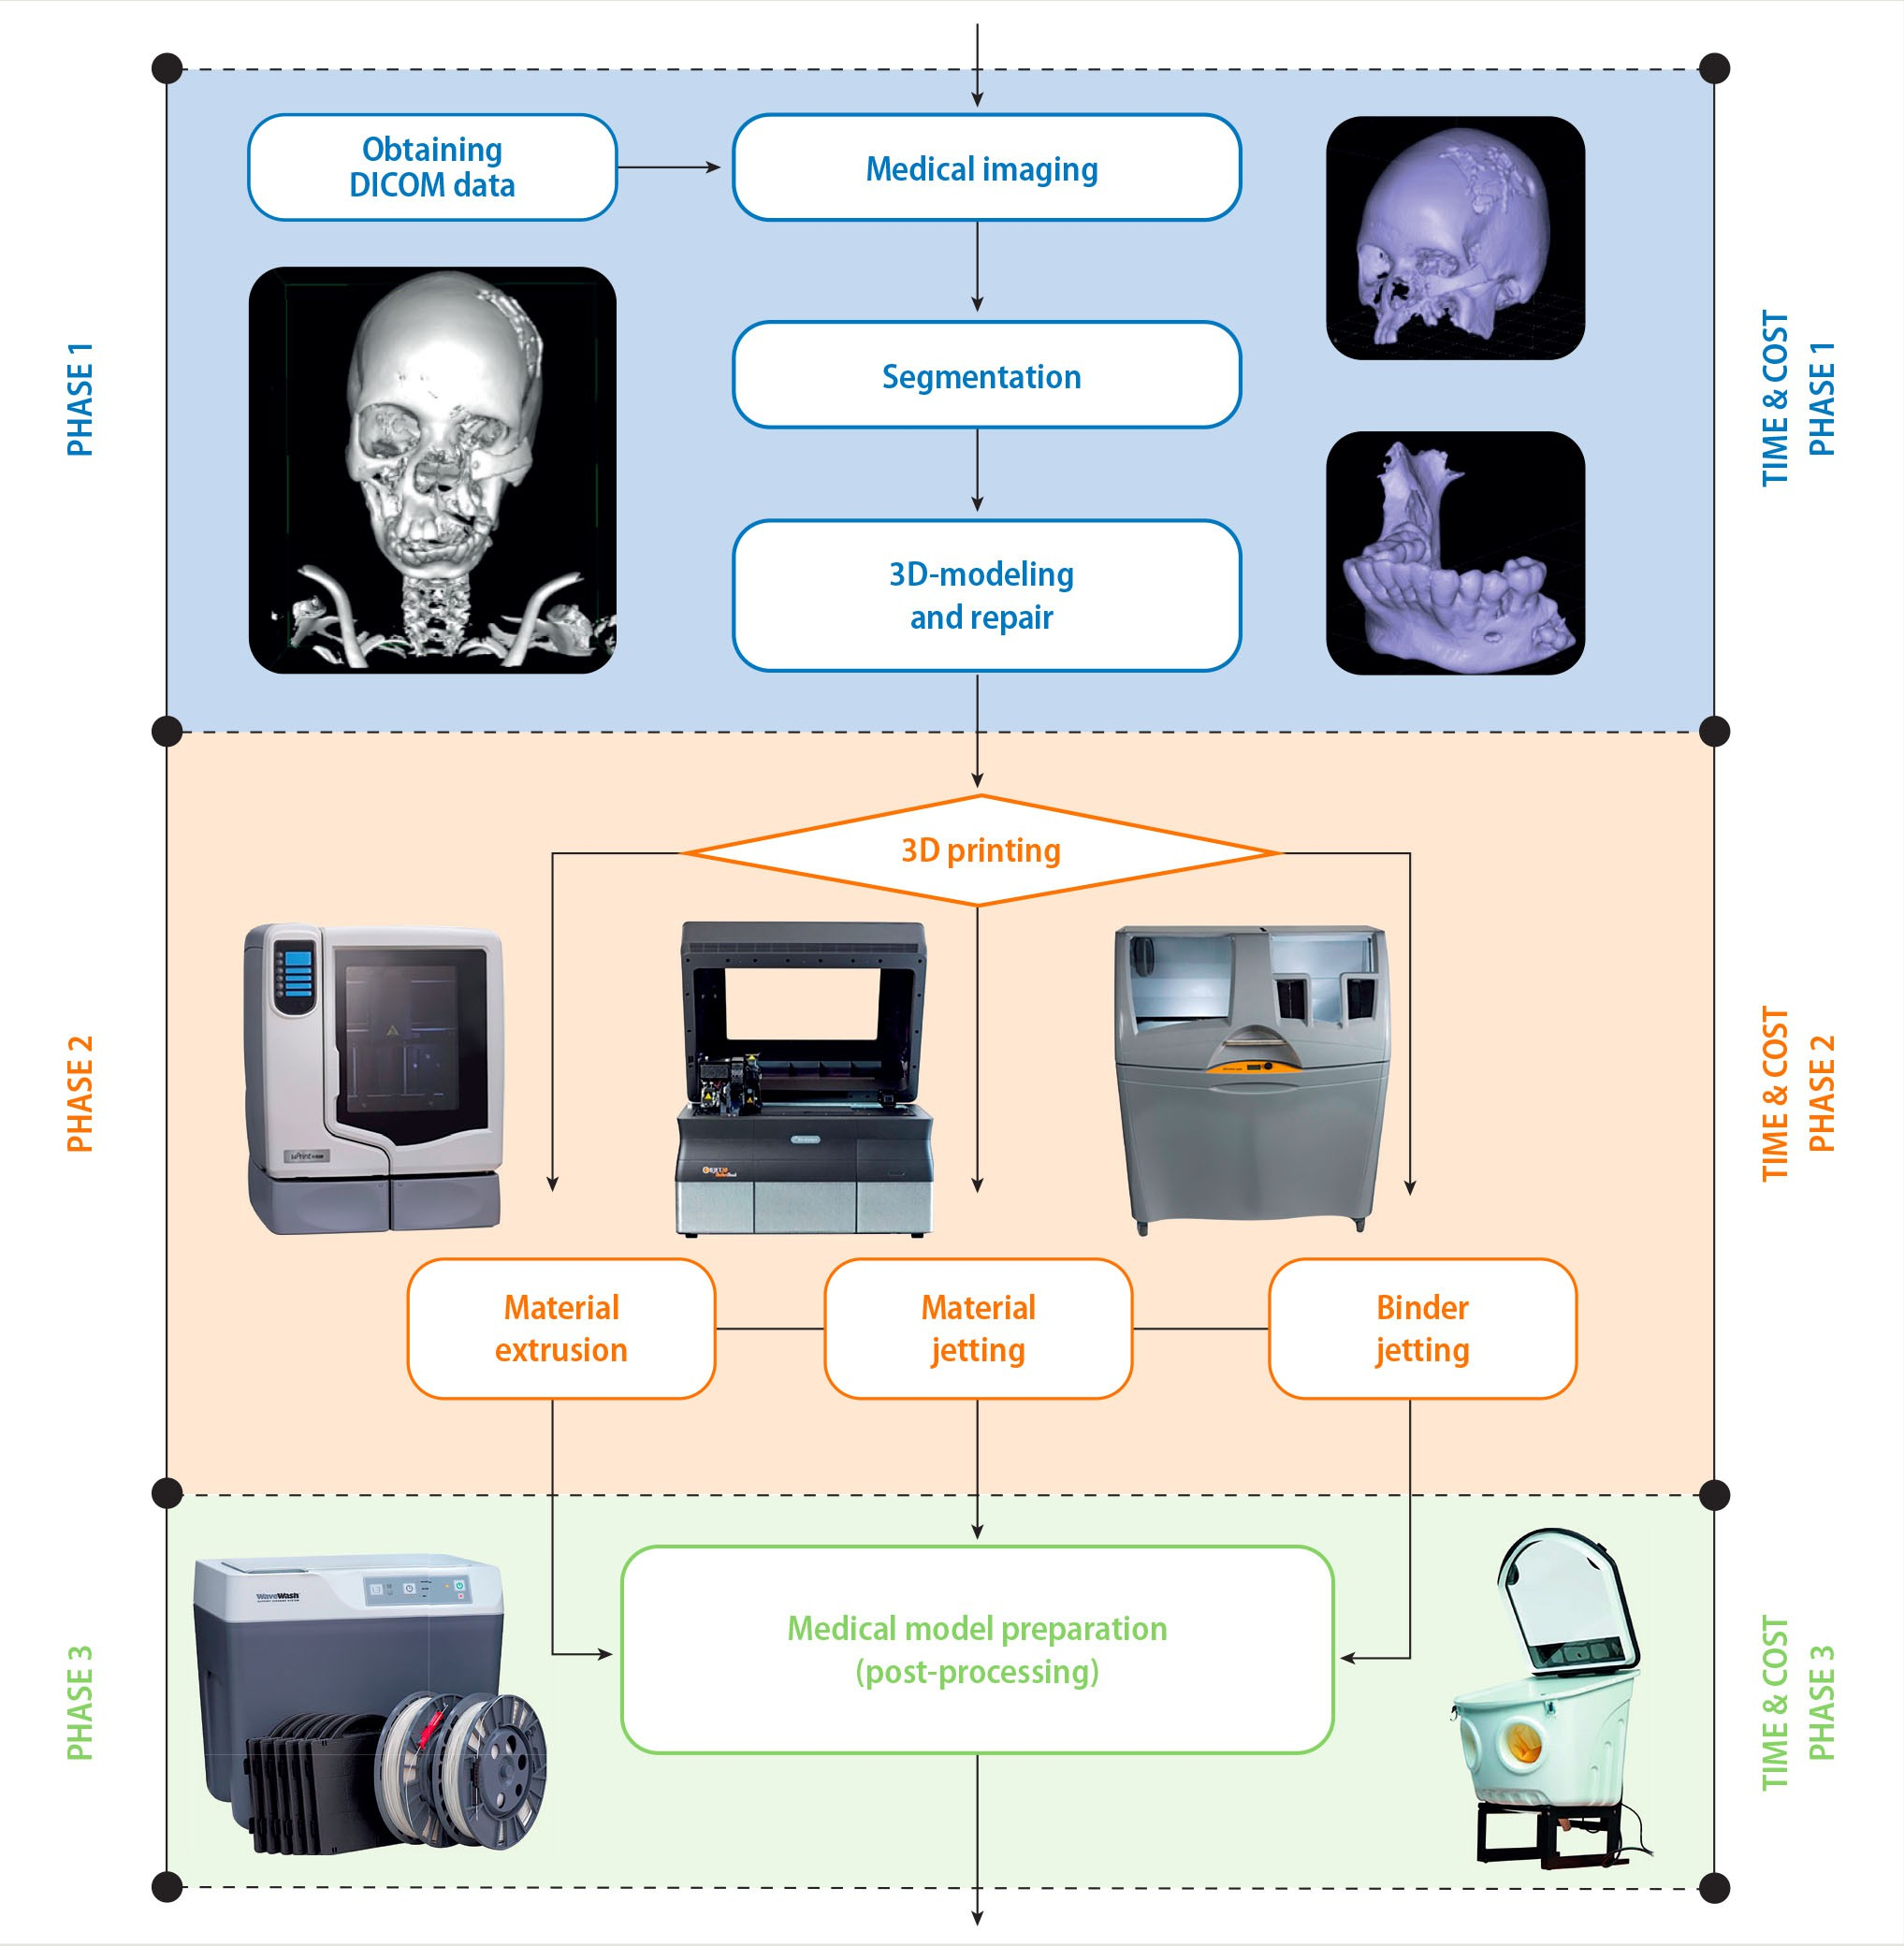 Workflow for 3D printing of medical models: phases, timeline and costs - Figure 1